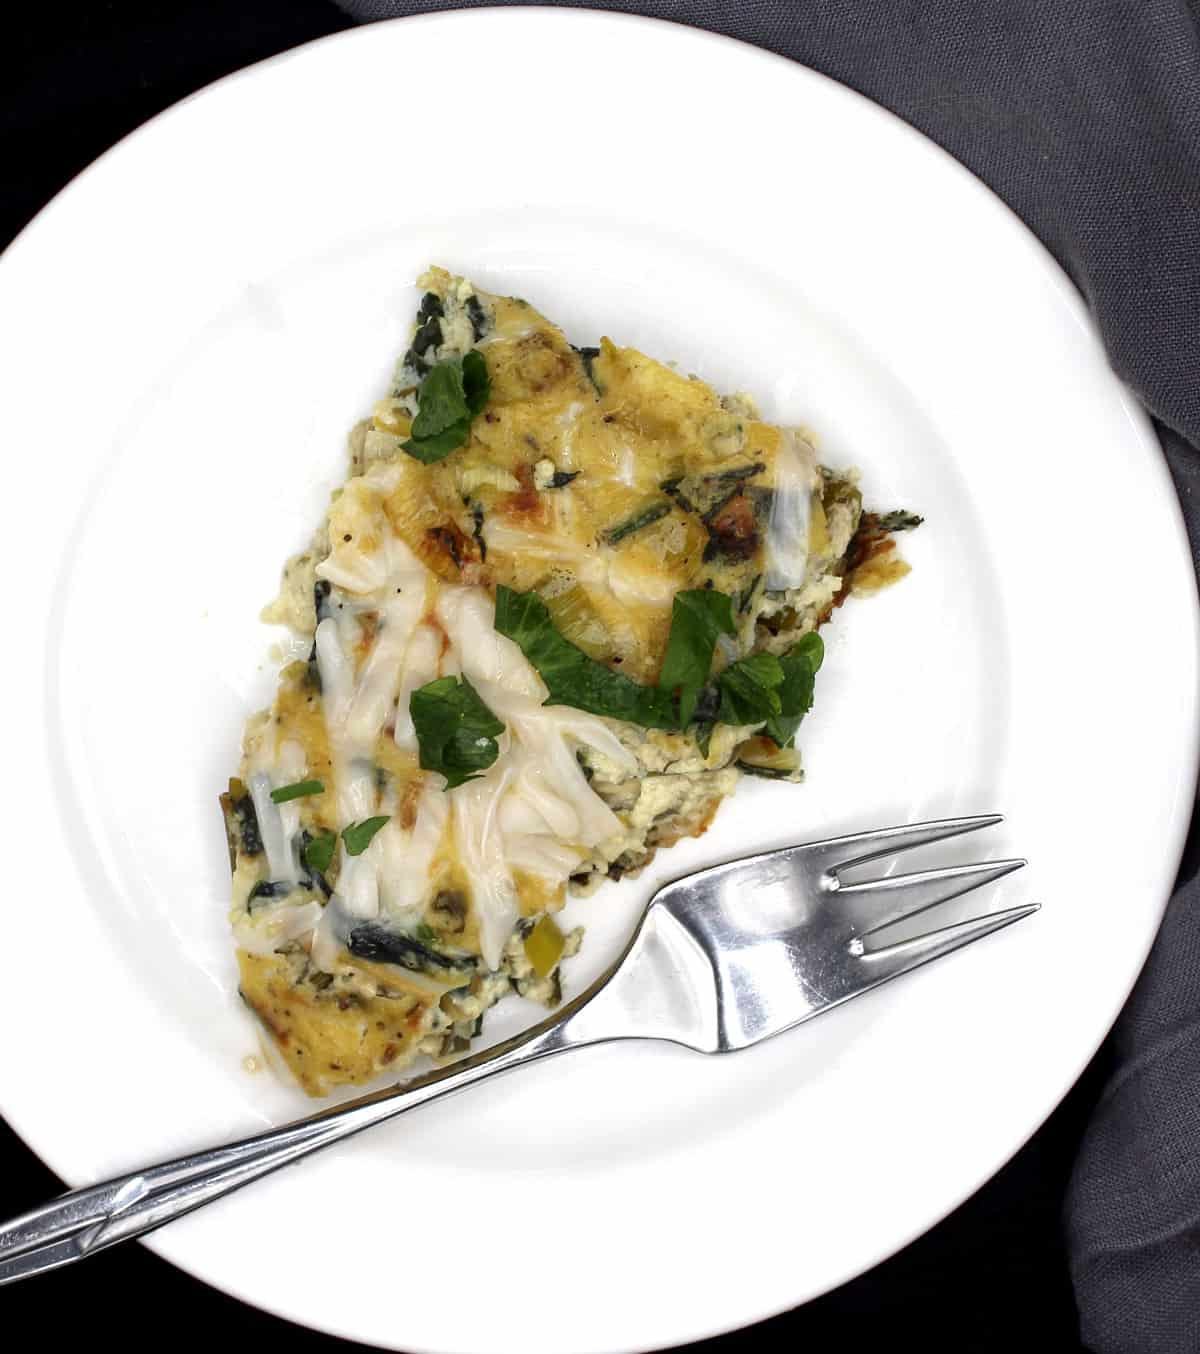 A slice of vegan leek and spinach frittata in a white plate with a steel fork.